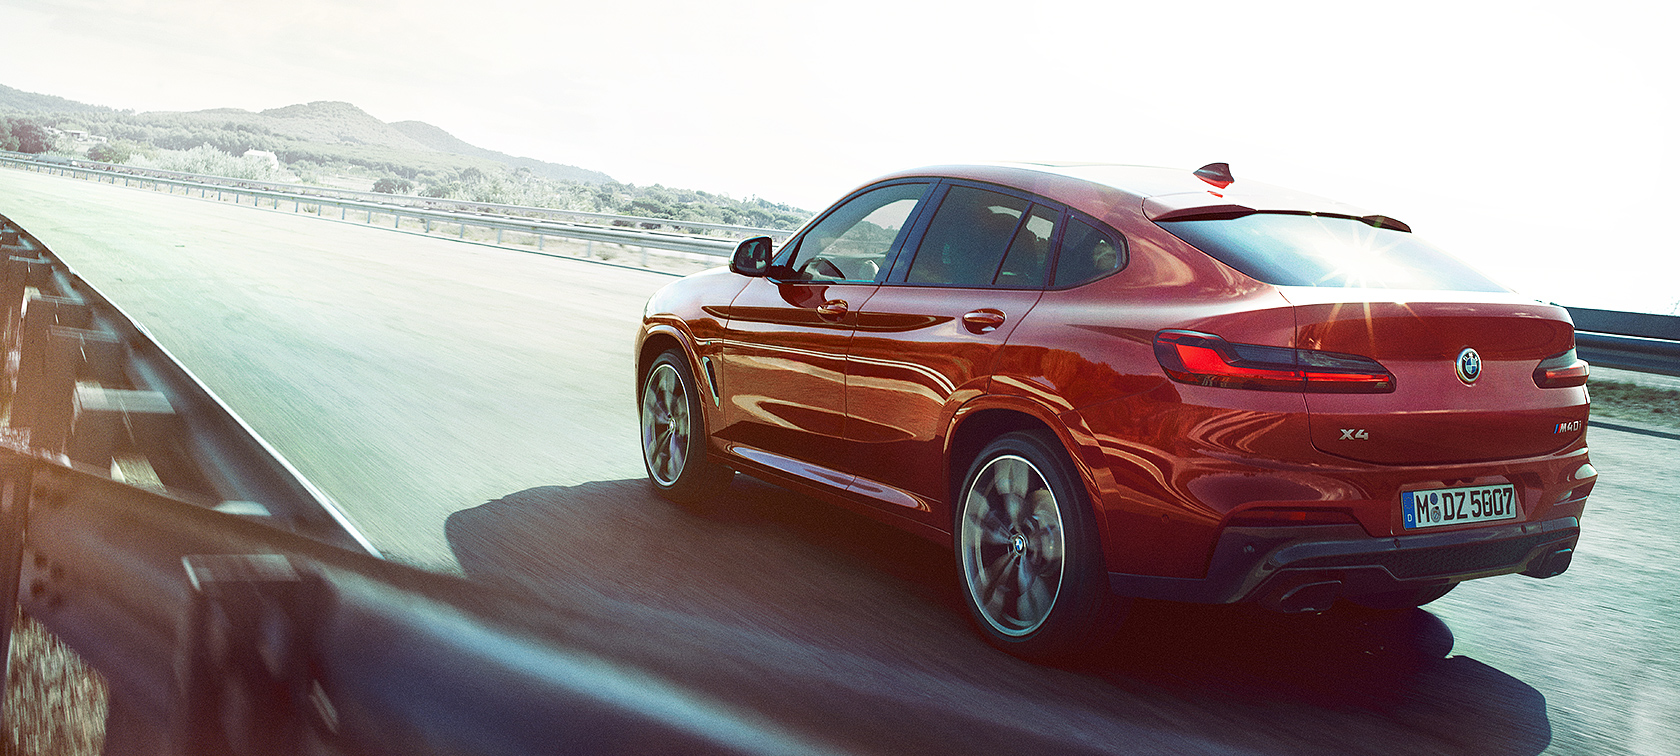 BMW X Series X4: metallic red vehicle on highway turn.